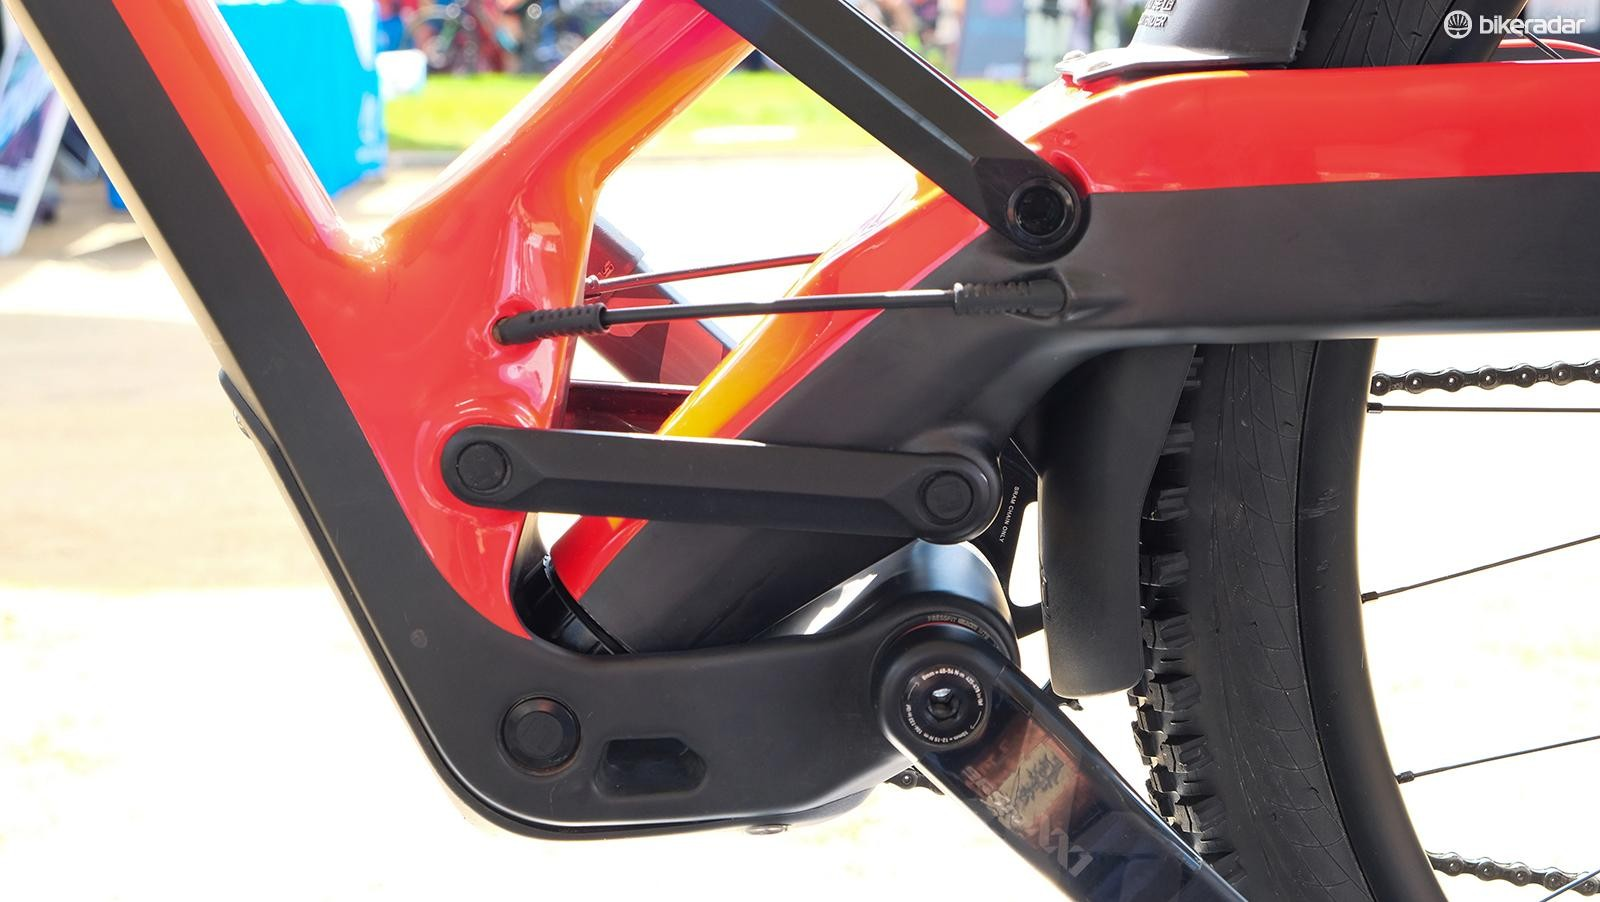 A pair of links connect the swingarm to the frame